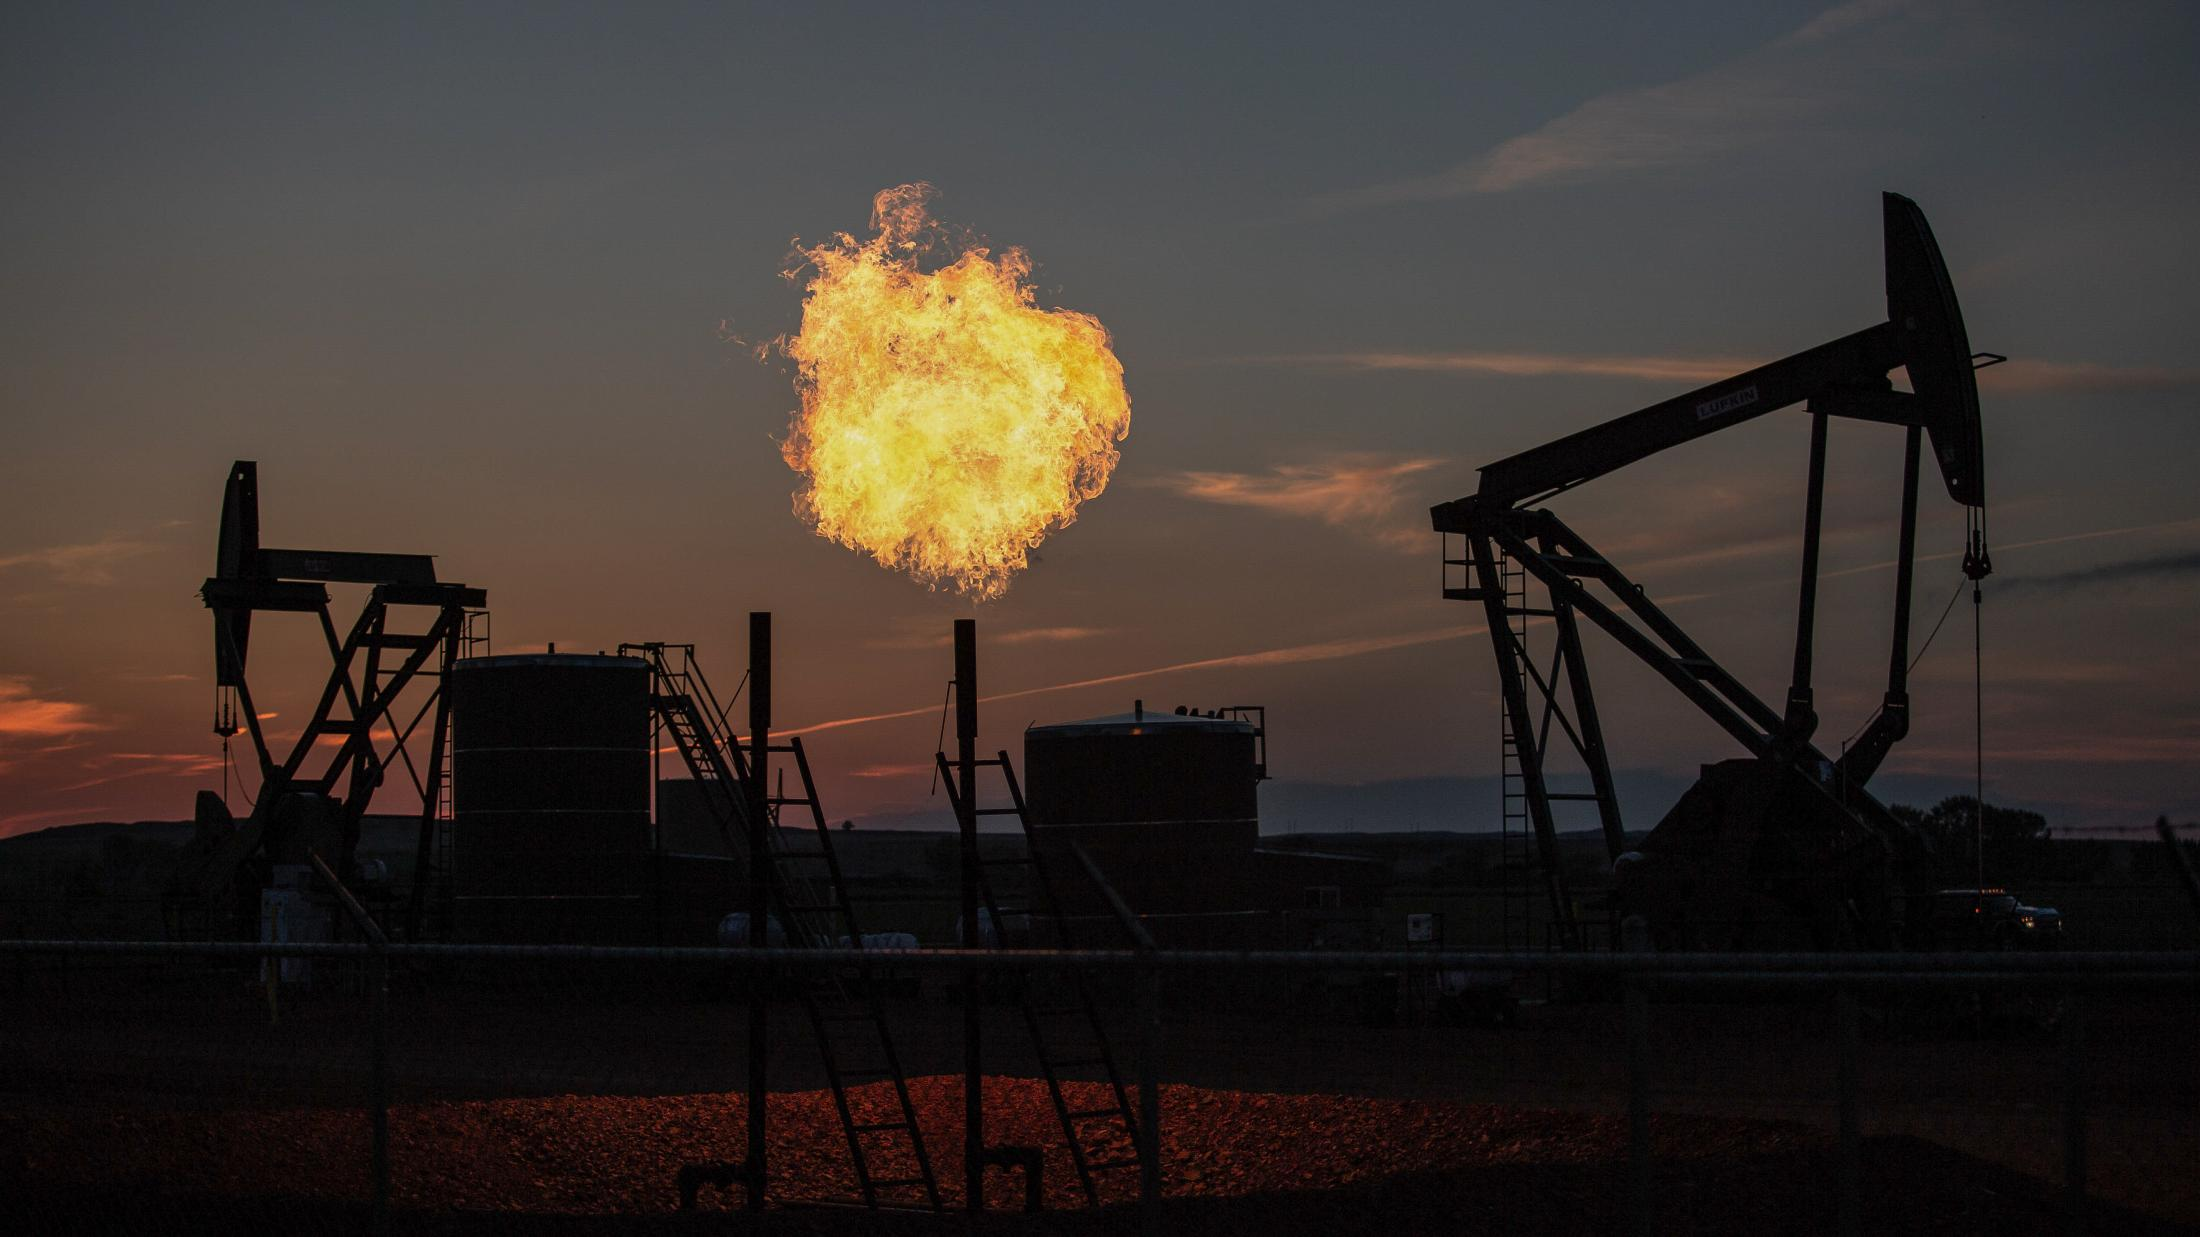 5/31/15- North Dakota - A fireball explodes from a natural gas pipe on a well site; gas is burned to save oil companies' money.